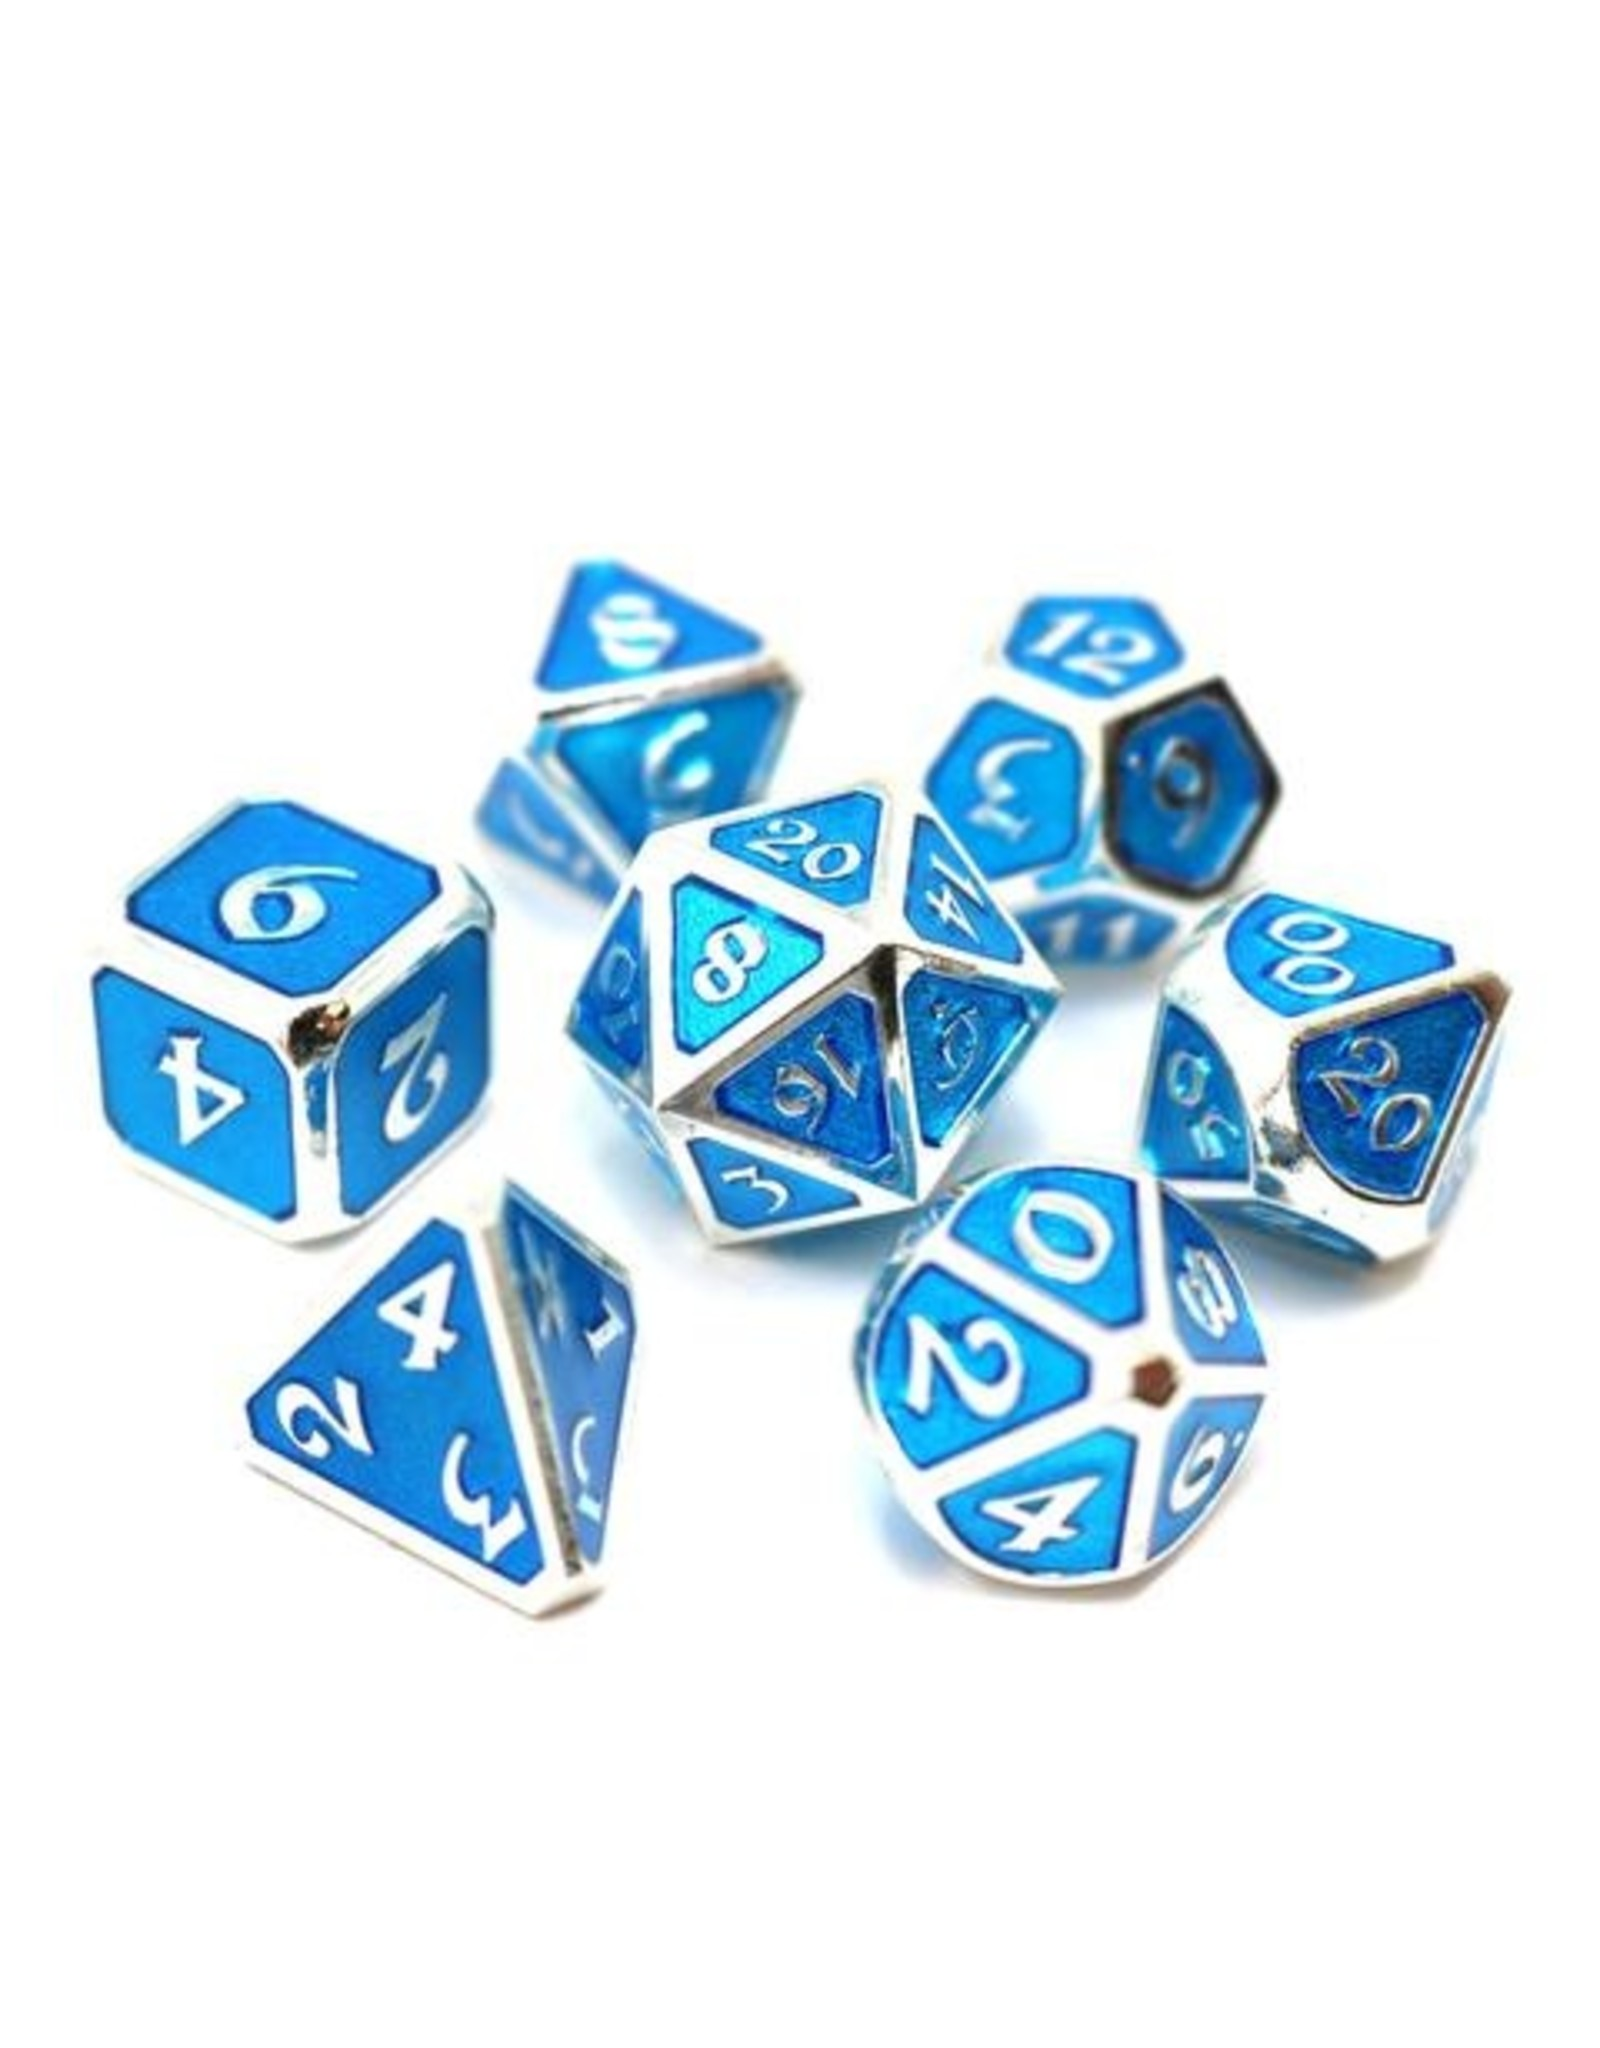 DIE HARD DICE DIE HARD DICE 7 CT RPG MYTHICA PLATINUM AQUAMARINE